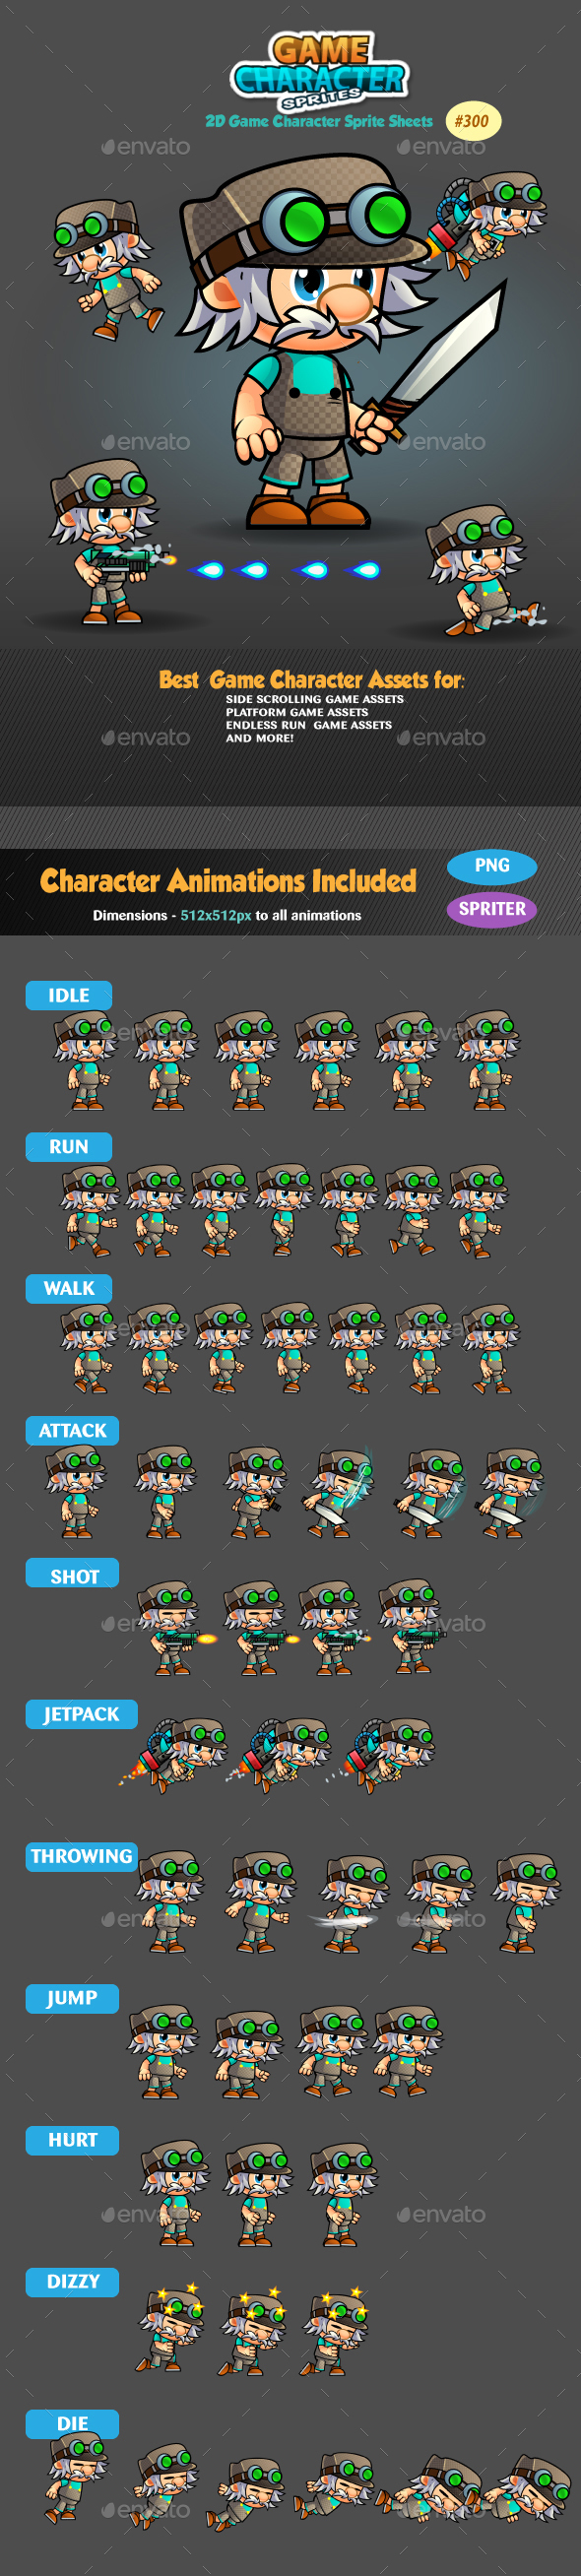 2D Game Character Sprites 300 - Sprites Game Assets